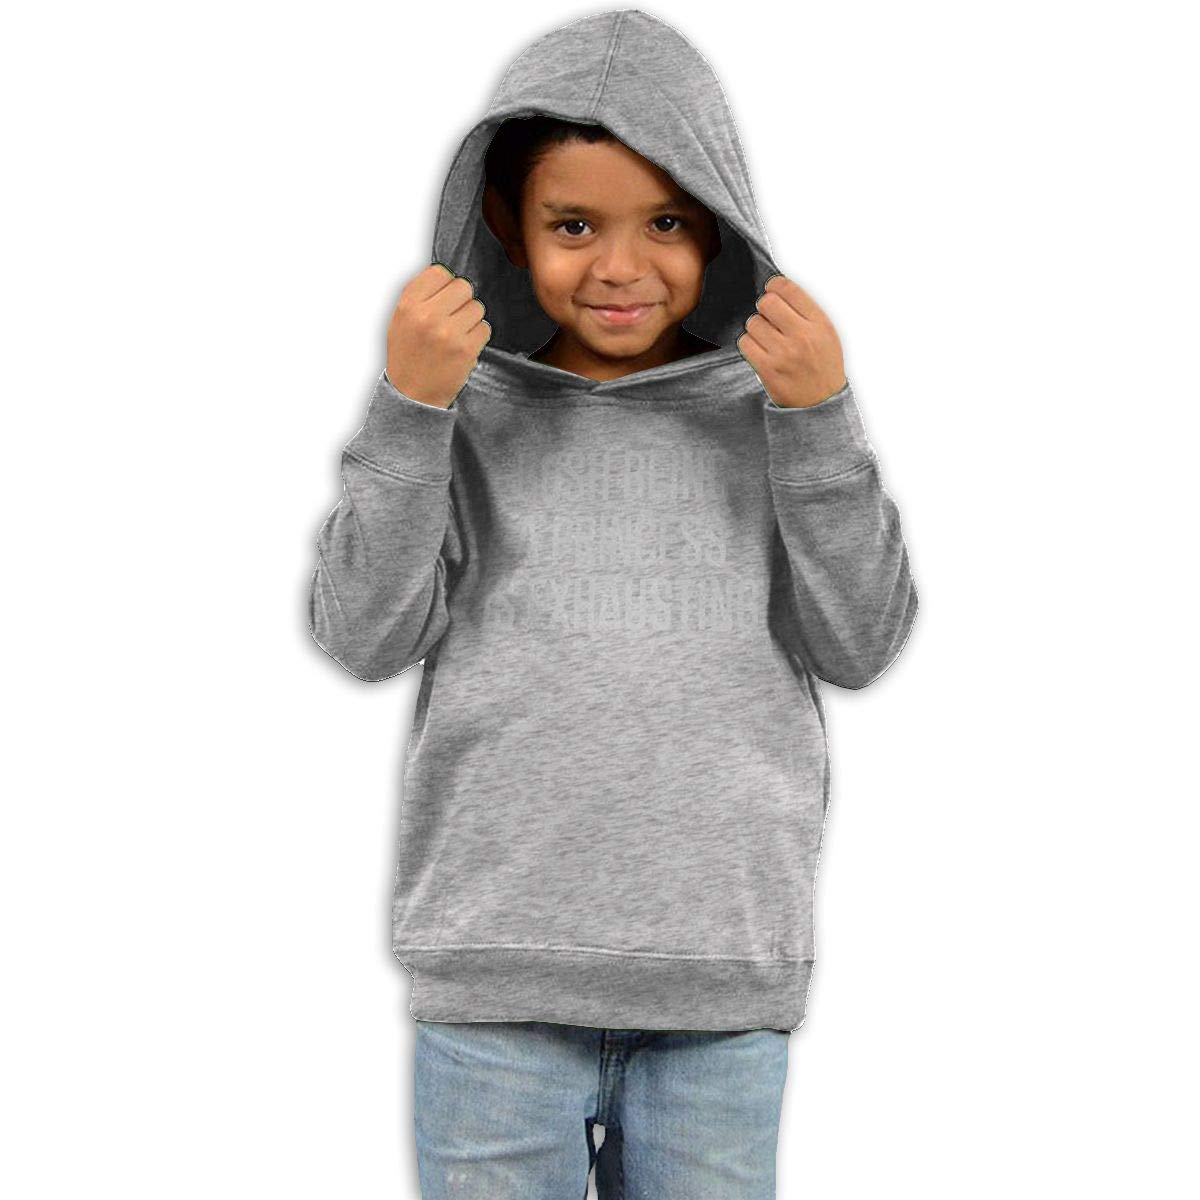 GUOZX Childrens Hooded Sweater Gosh Being A Princess is Exhausting Kids Sweater Black